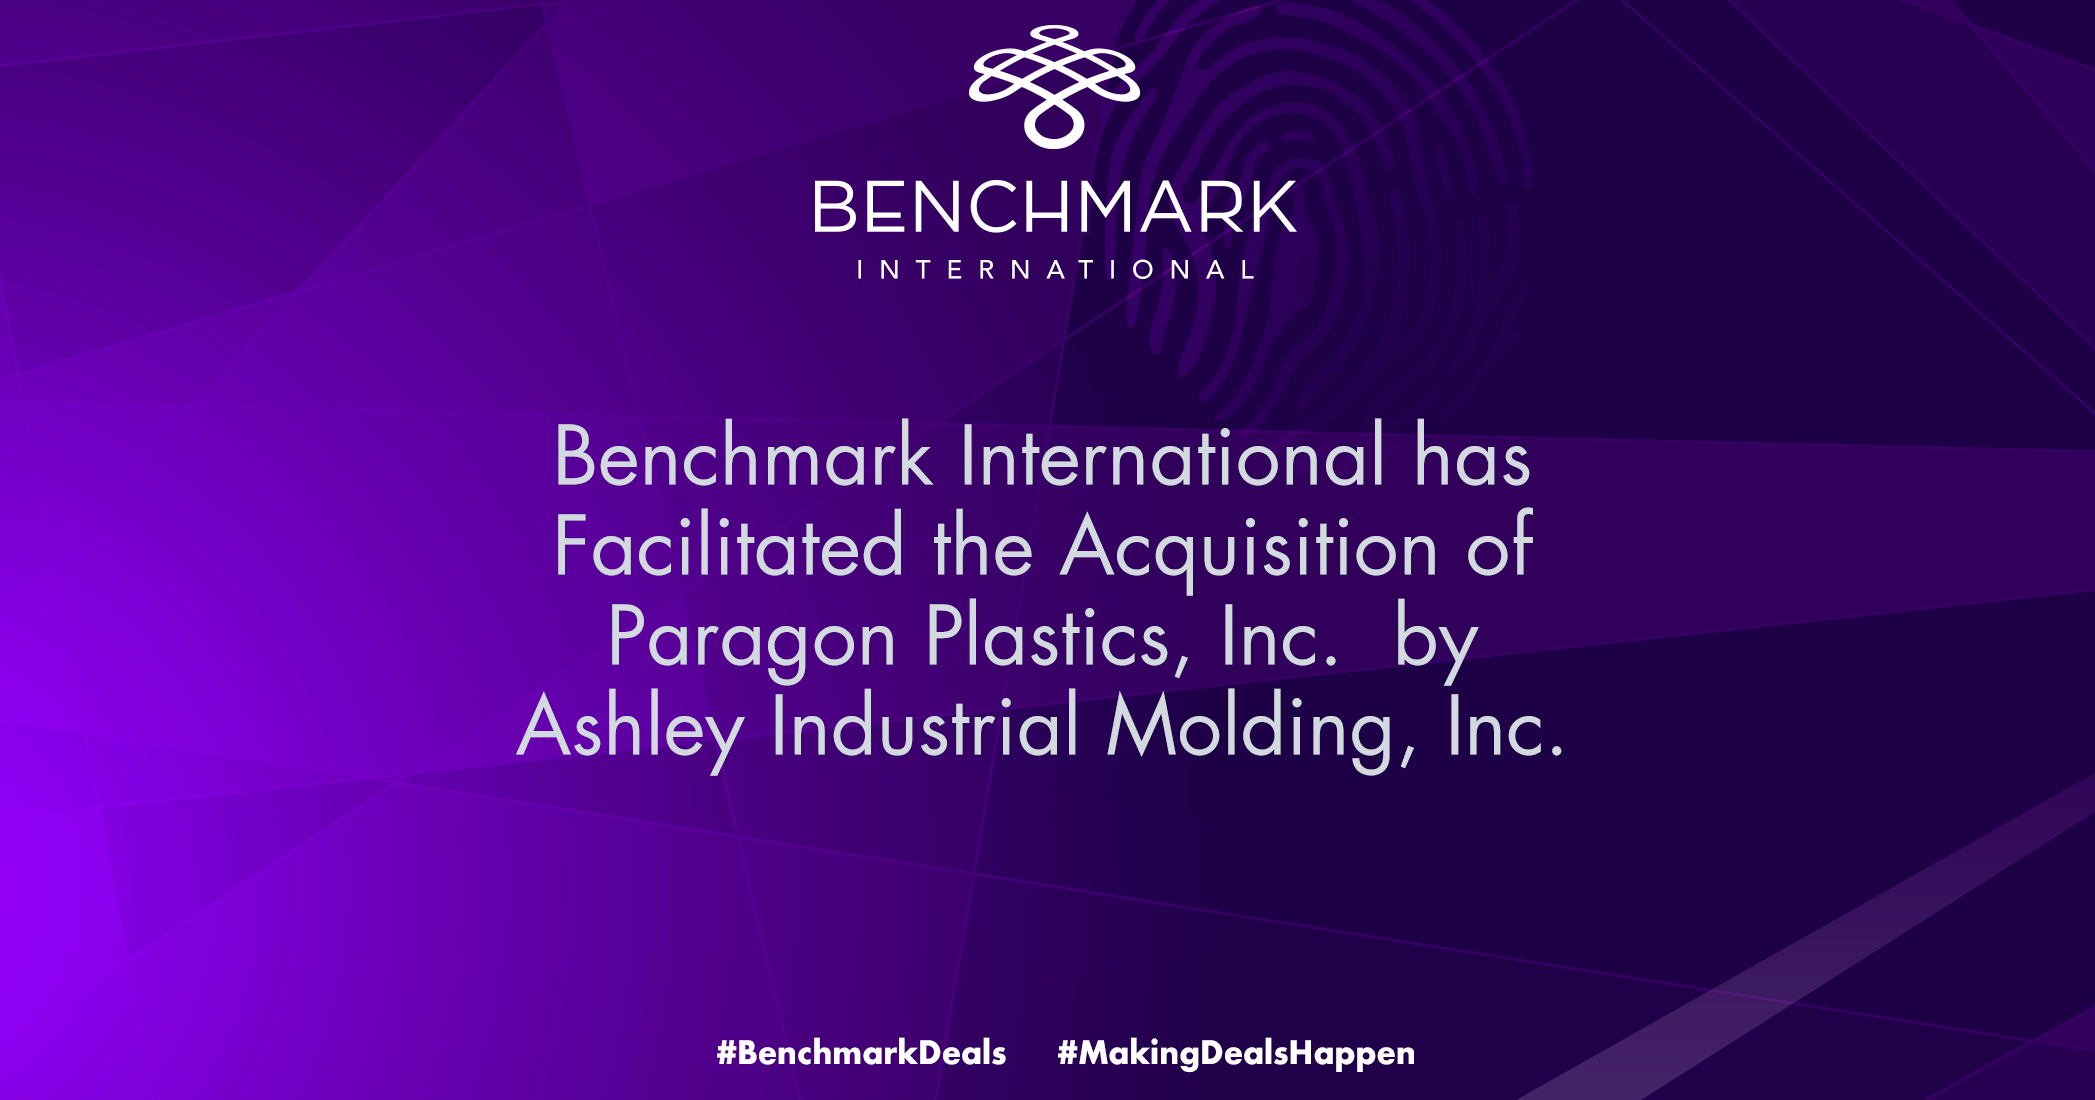 Benchmark International has Facilitated the Acquisition of Paragon Plastics, Inc. by Ashley Industrial Molding, Inc.